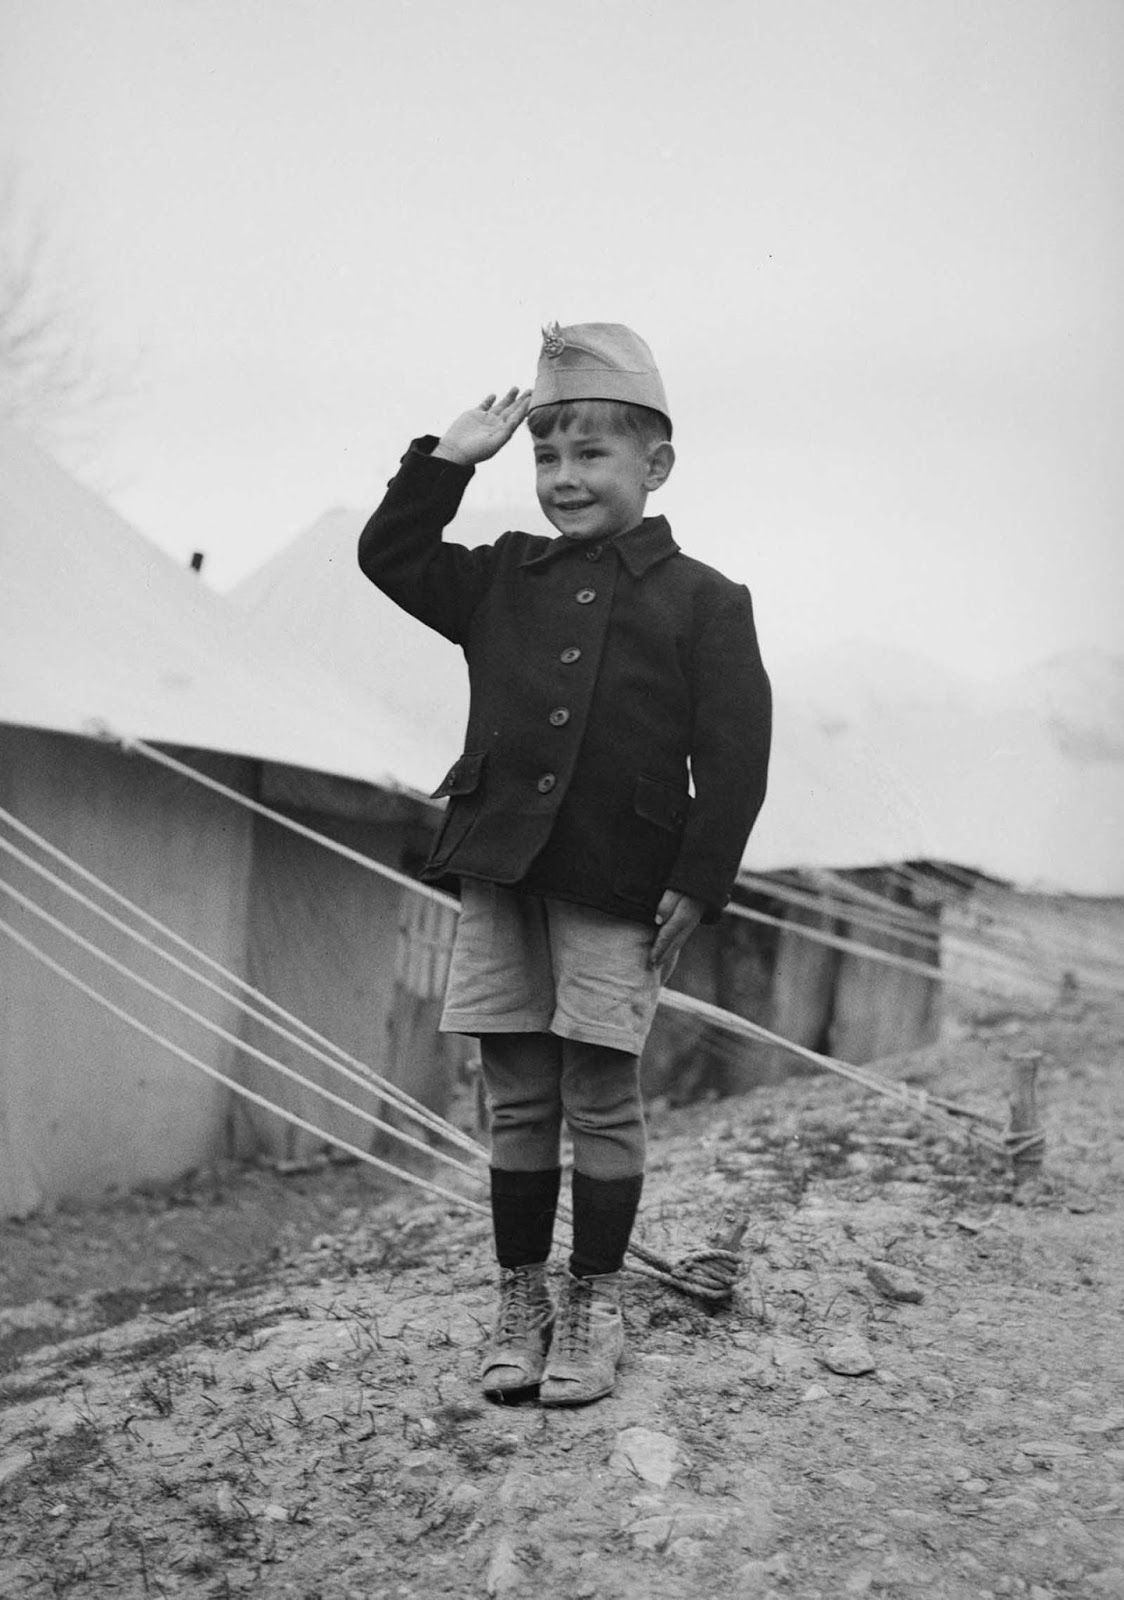 A young Polish refugee does a military salute outside his tent.